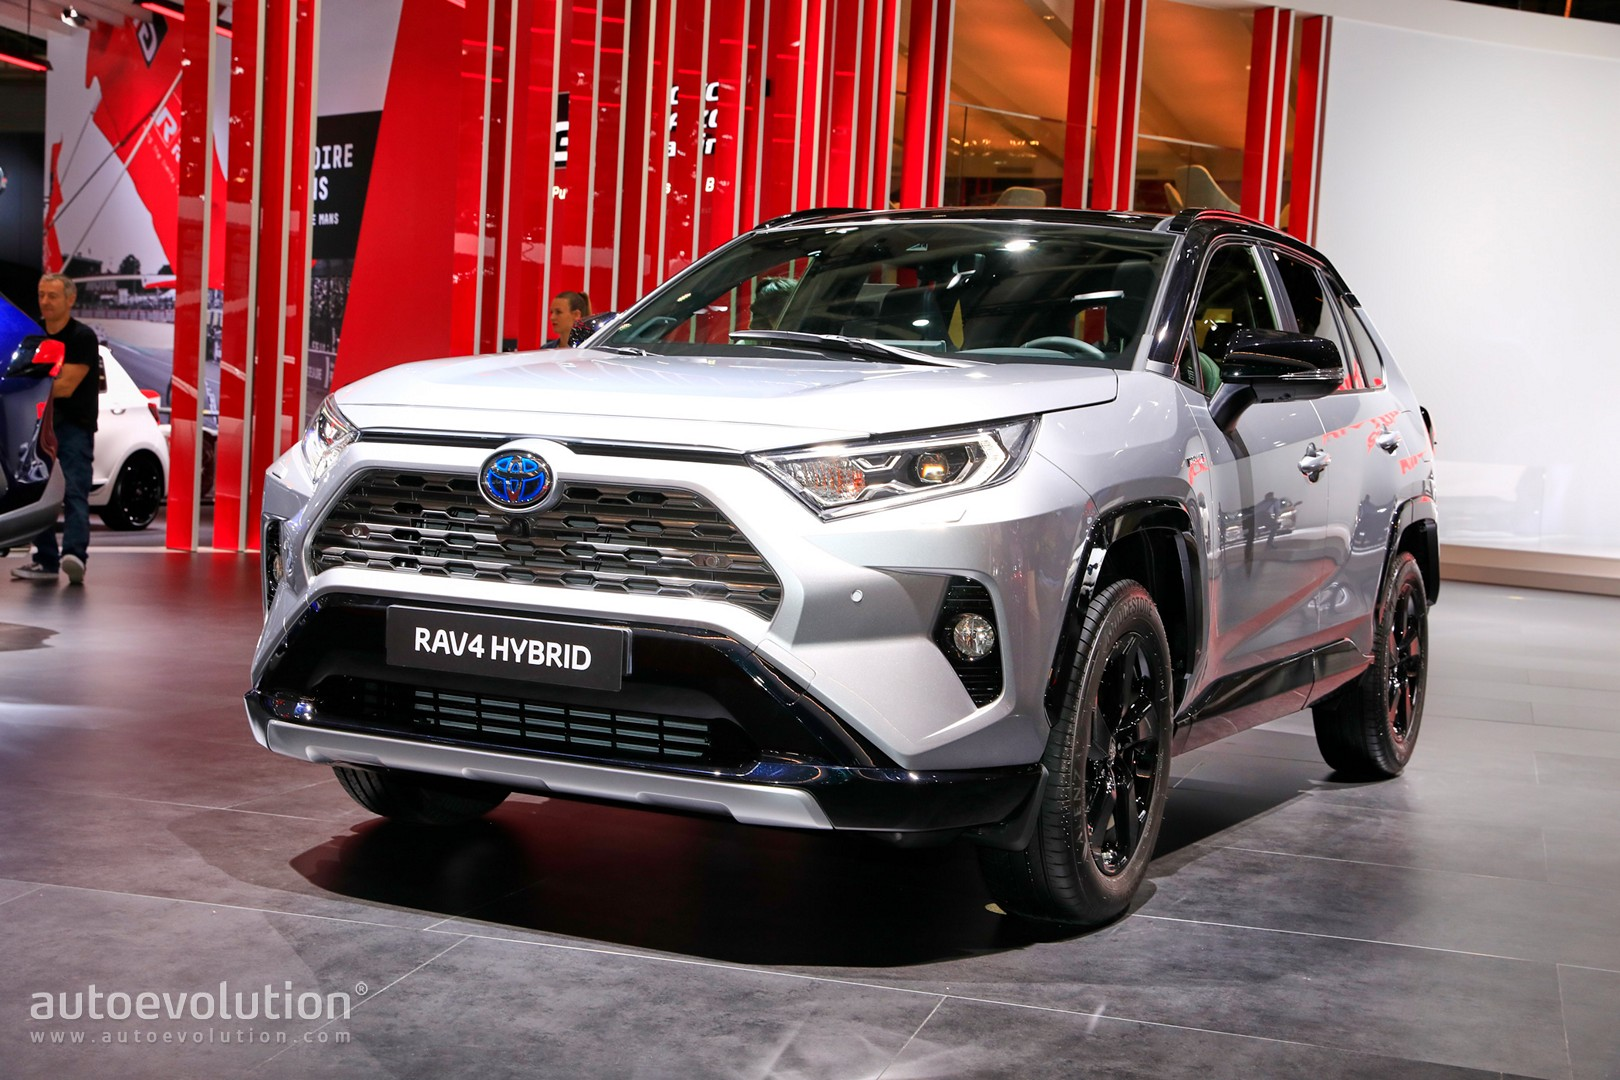 2019 Toyota Rav4 Makes Hybrid Production Debut In Paris Autoevolution